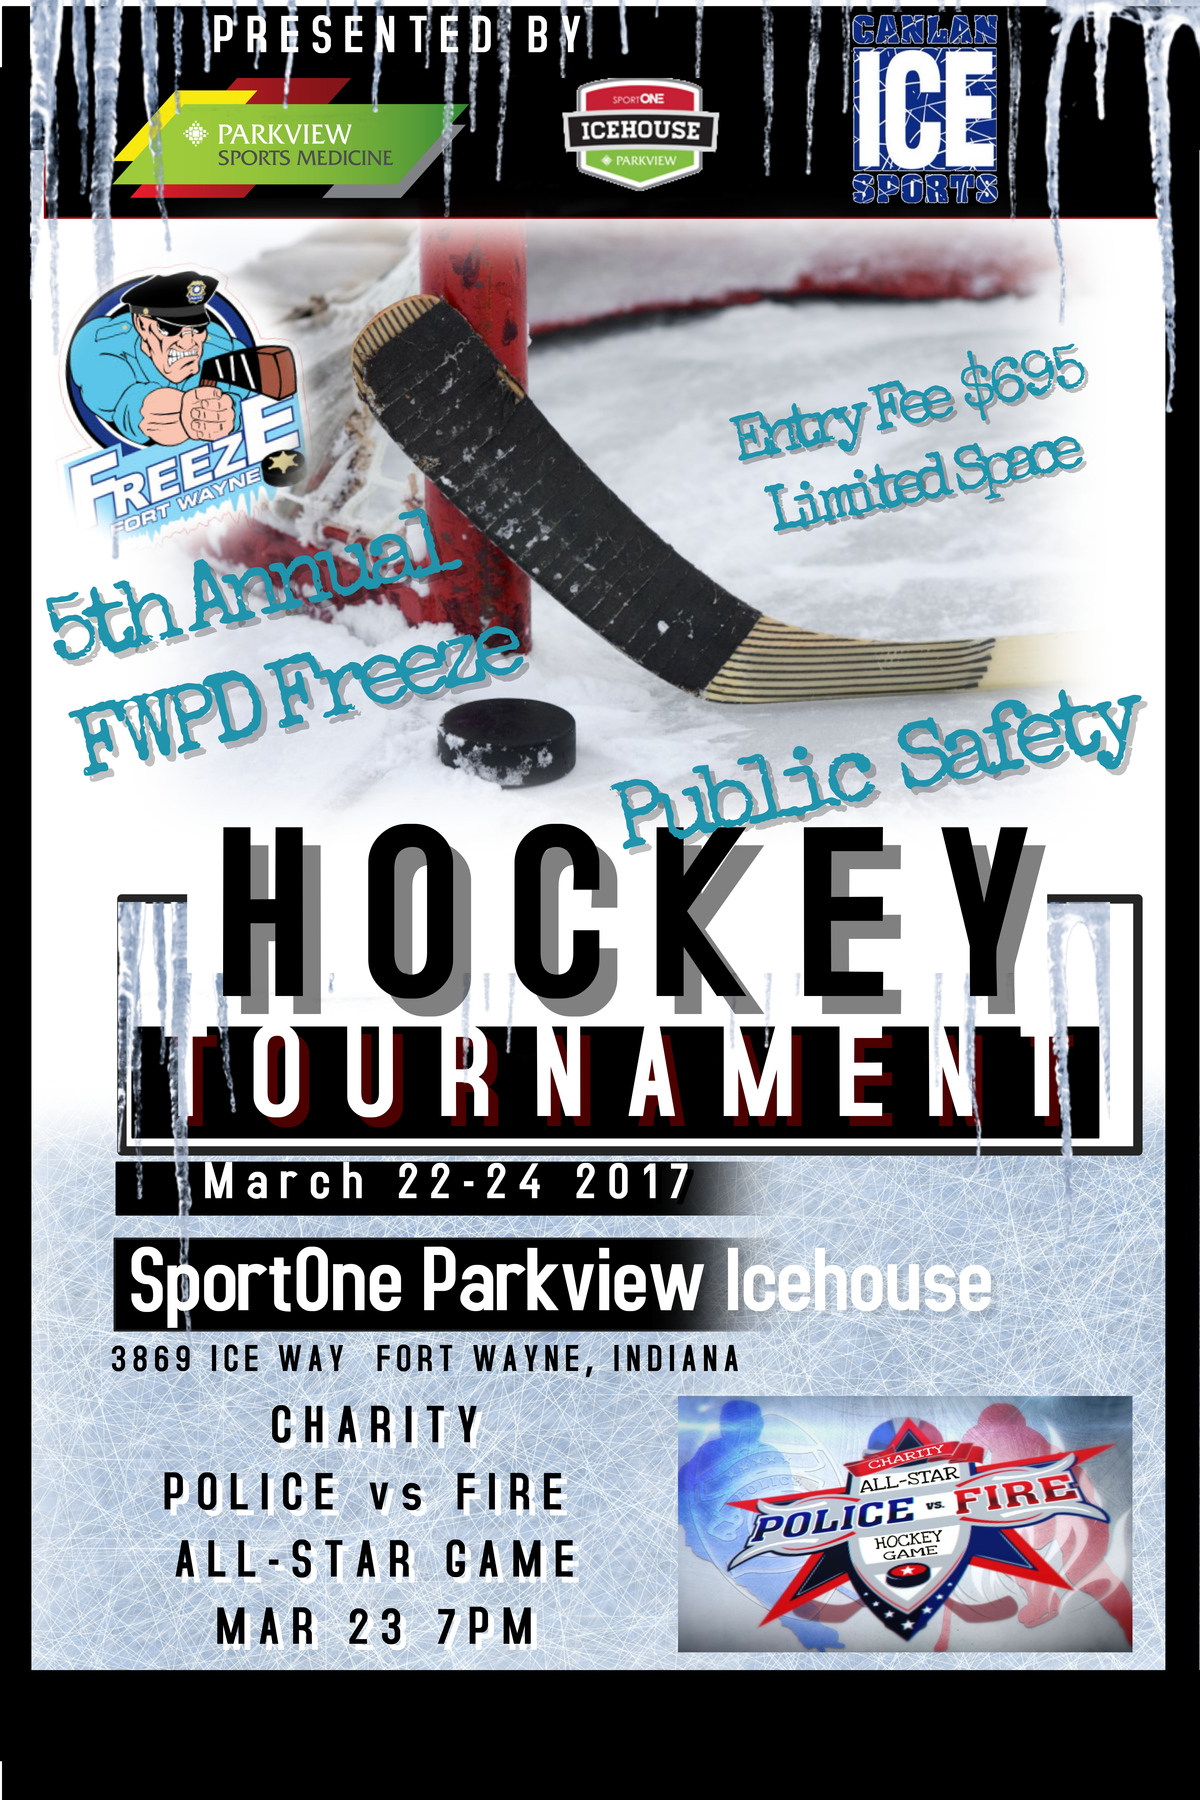 5th Annual Parkview Sports Medicine Public Safety Hockey Tournament